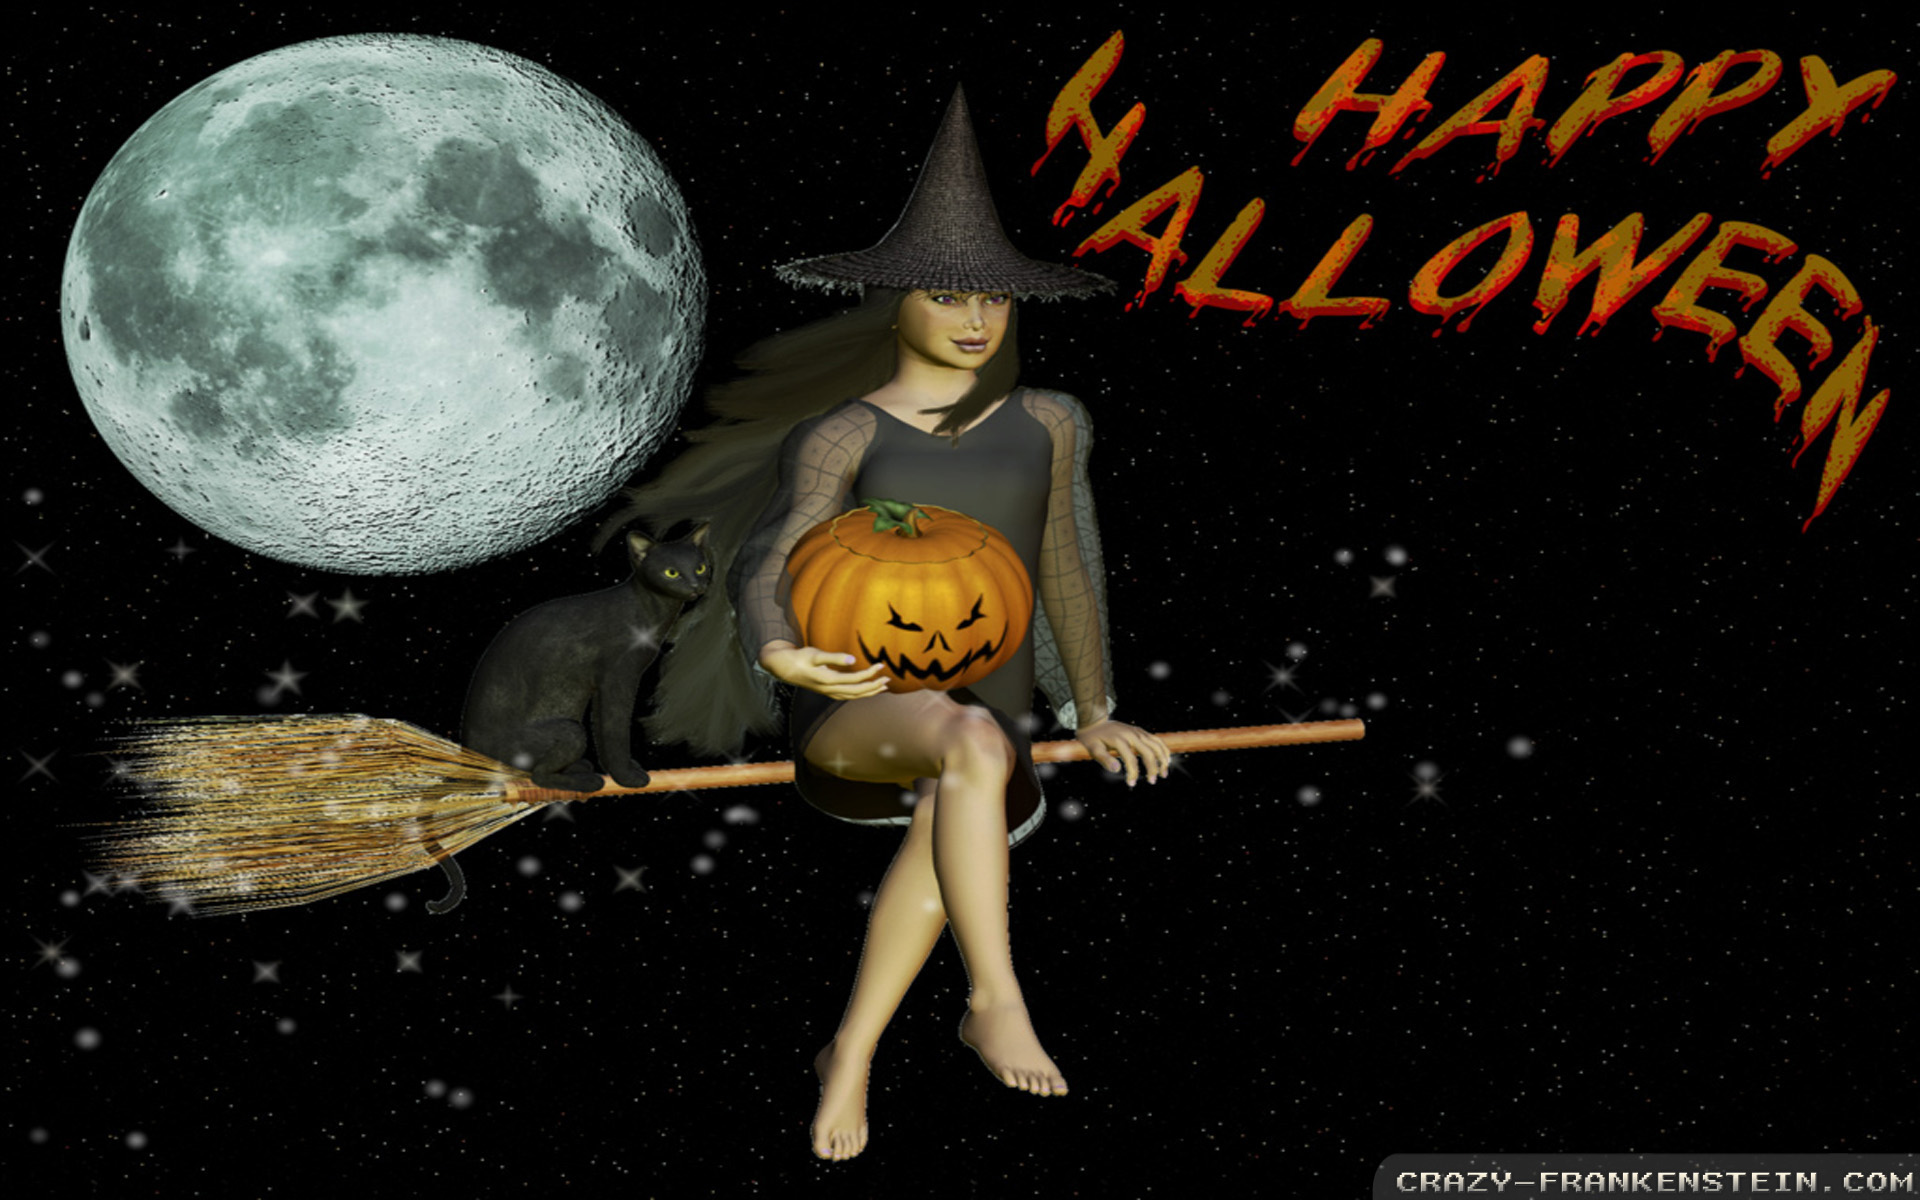 Vintage Halloween Witch Wallpapers Desktop Background Is Cool Wallpapers